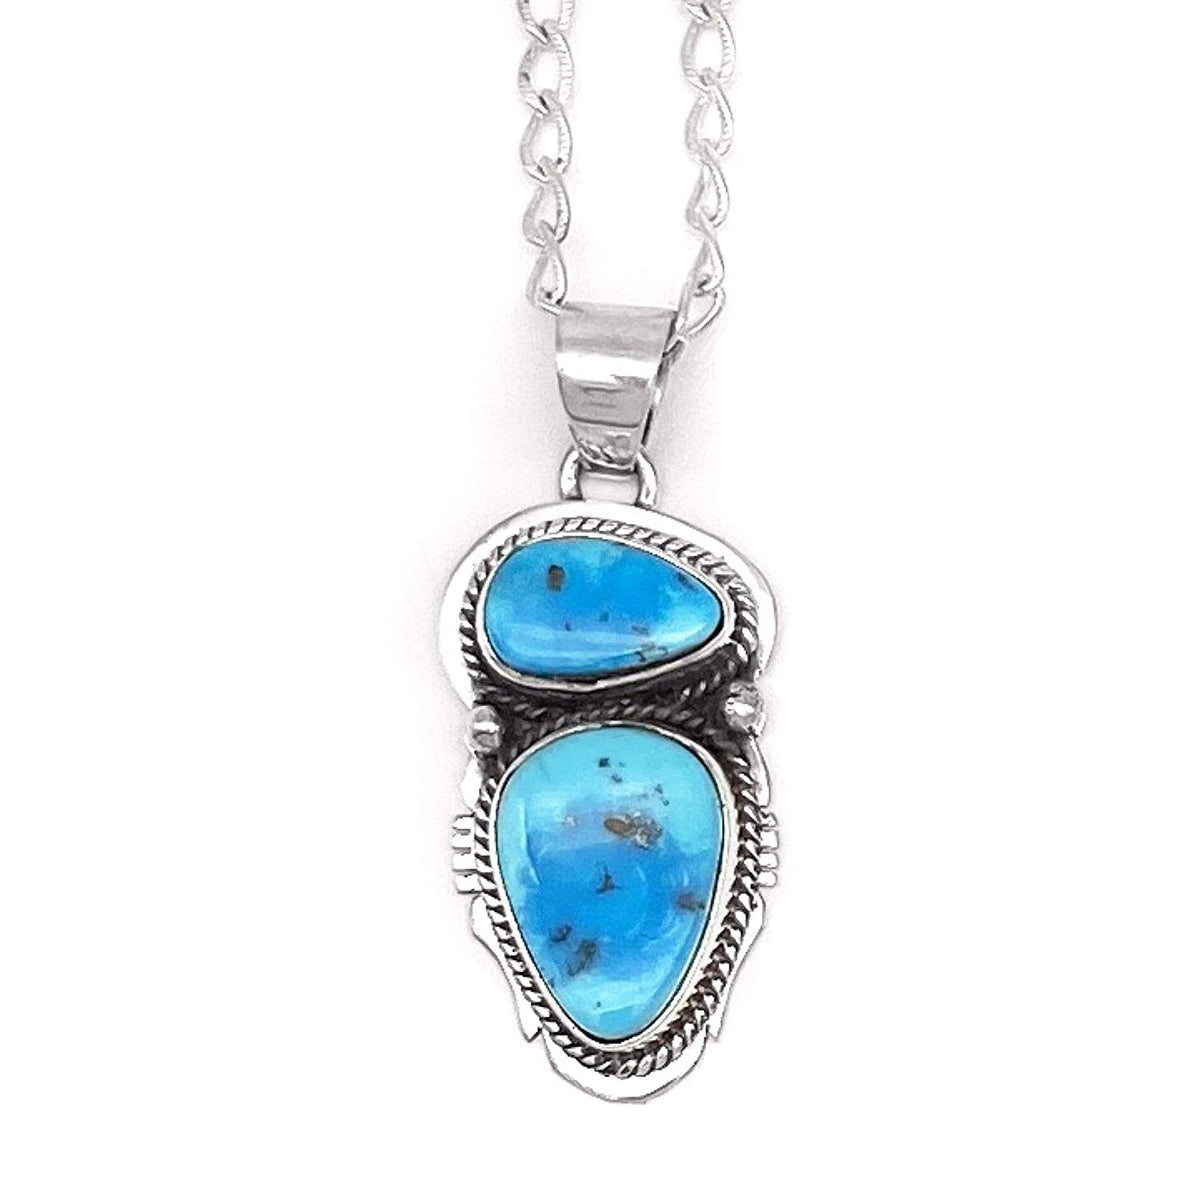 Genuine Kingman Turquoise Necklace, Pendant and Chain Set, 925 Sterling Silver, Native American USA Handmade, Artist Signed, Natural Stone, Nickle Free